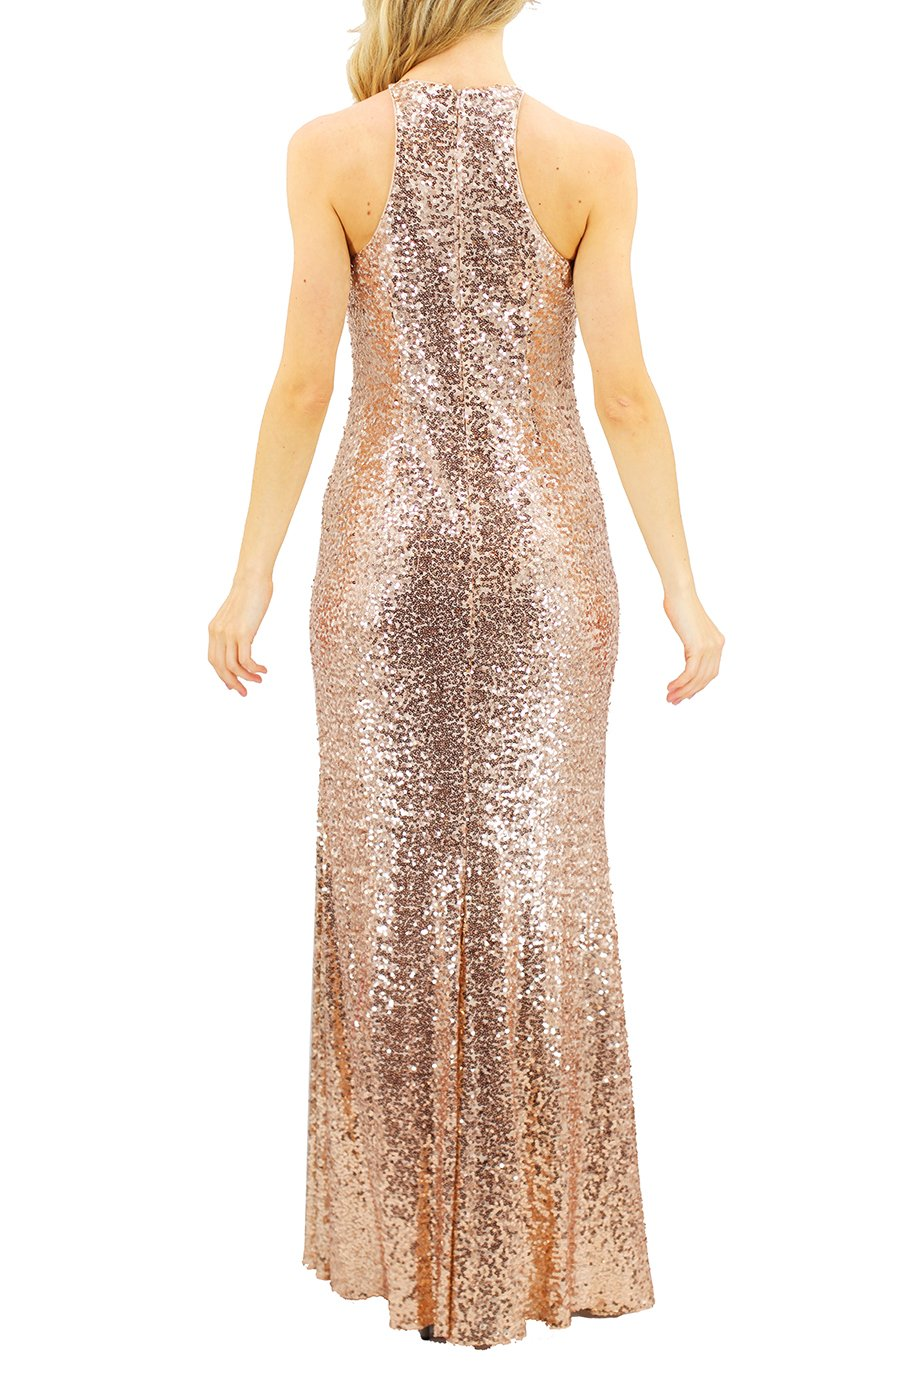 Badgley Mischka Gold Sequin Racerback Gown